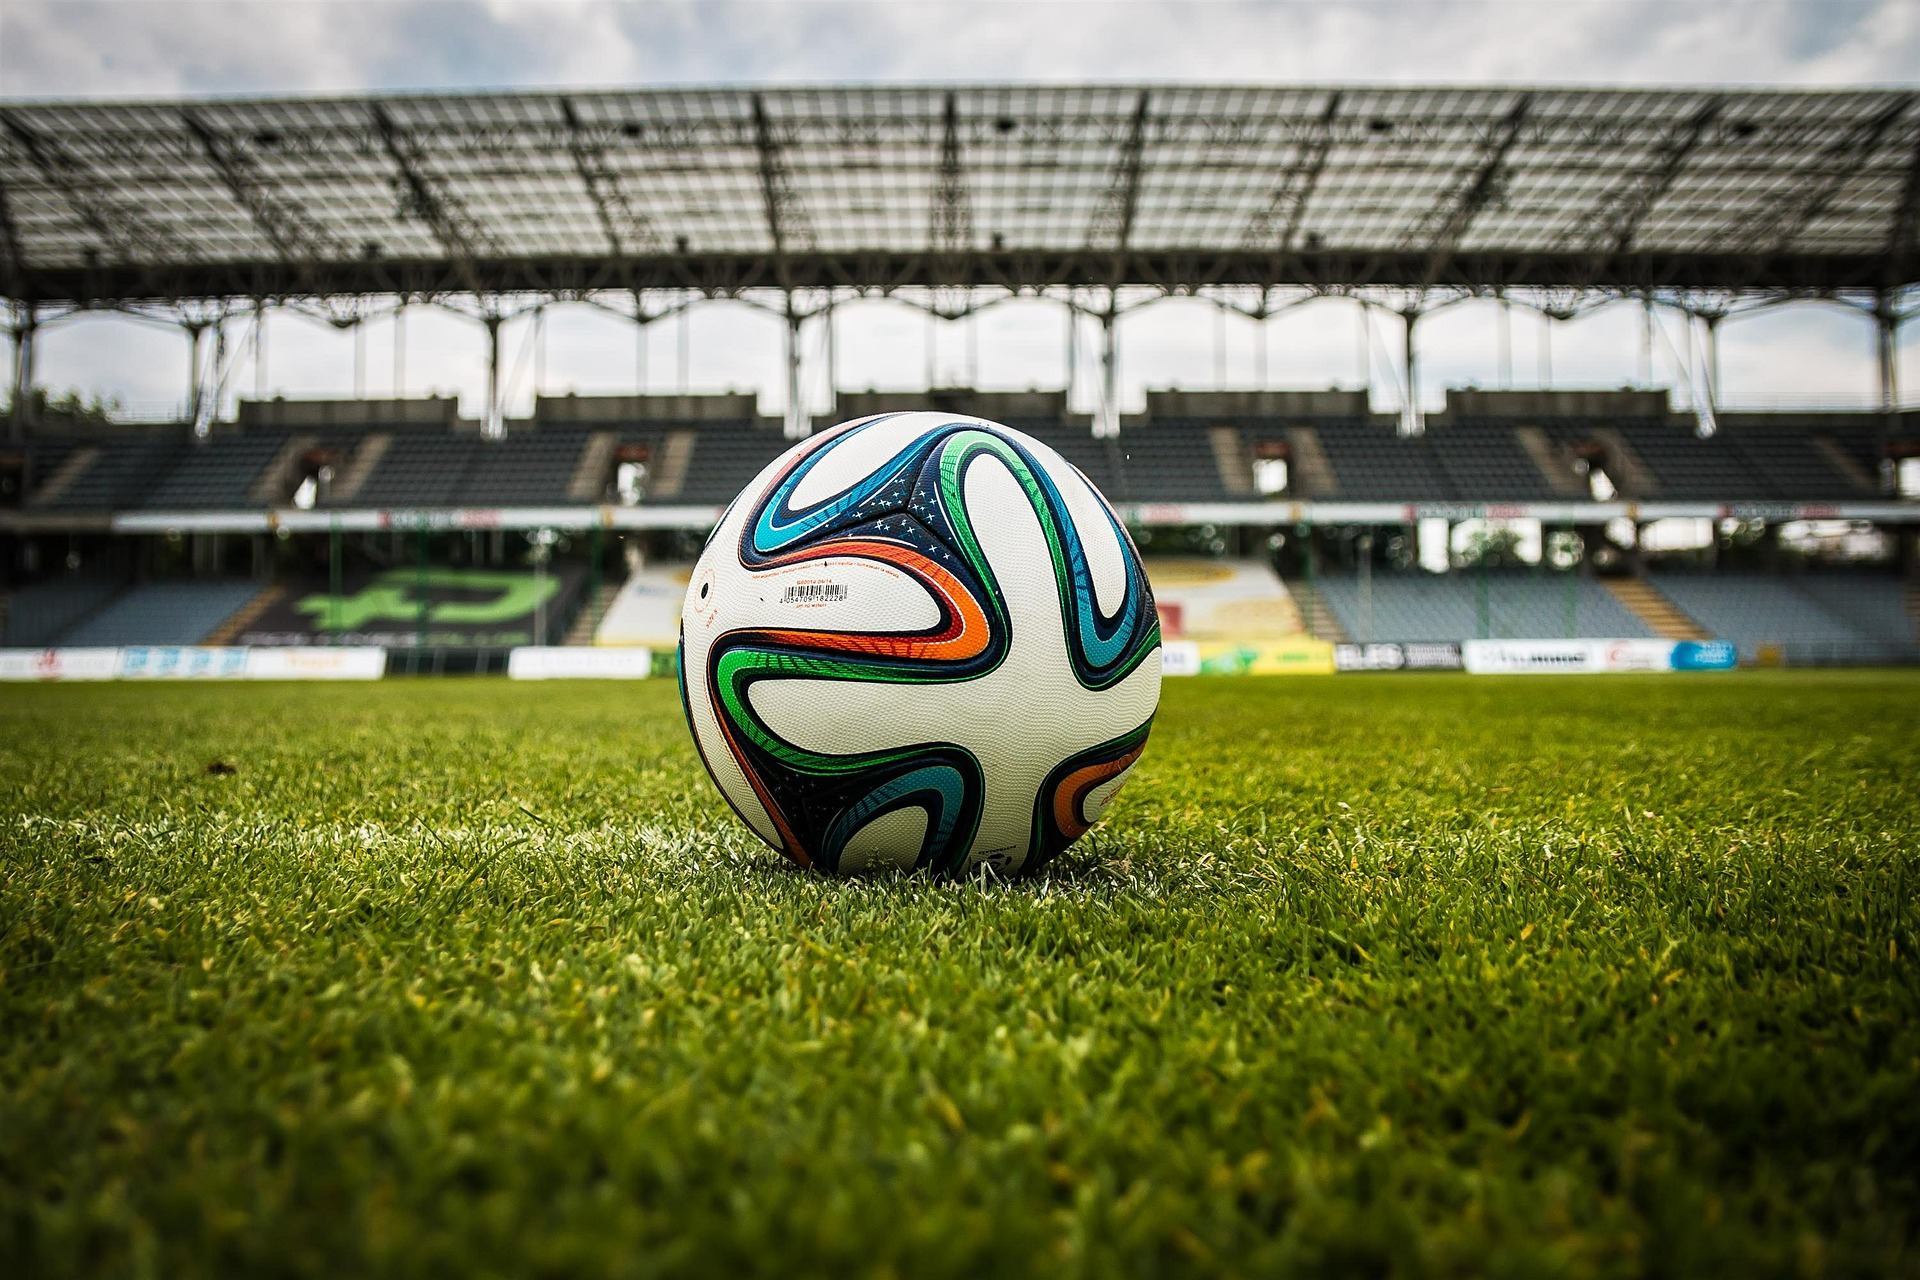 <p>Football is the most popular sport on the planet. It is also known as soccer. The game is popular because it can be played by up to 22 woMen at the same time. All you need is a field, a ball and 2 goal posts. More &#8230;Football A game usually [&hellip;]</p>